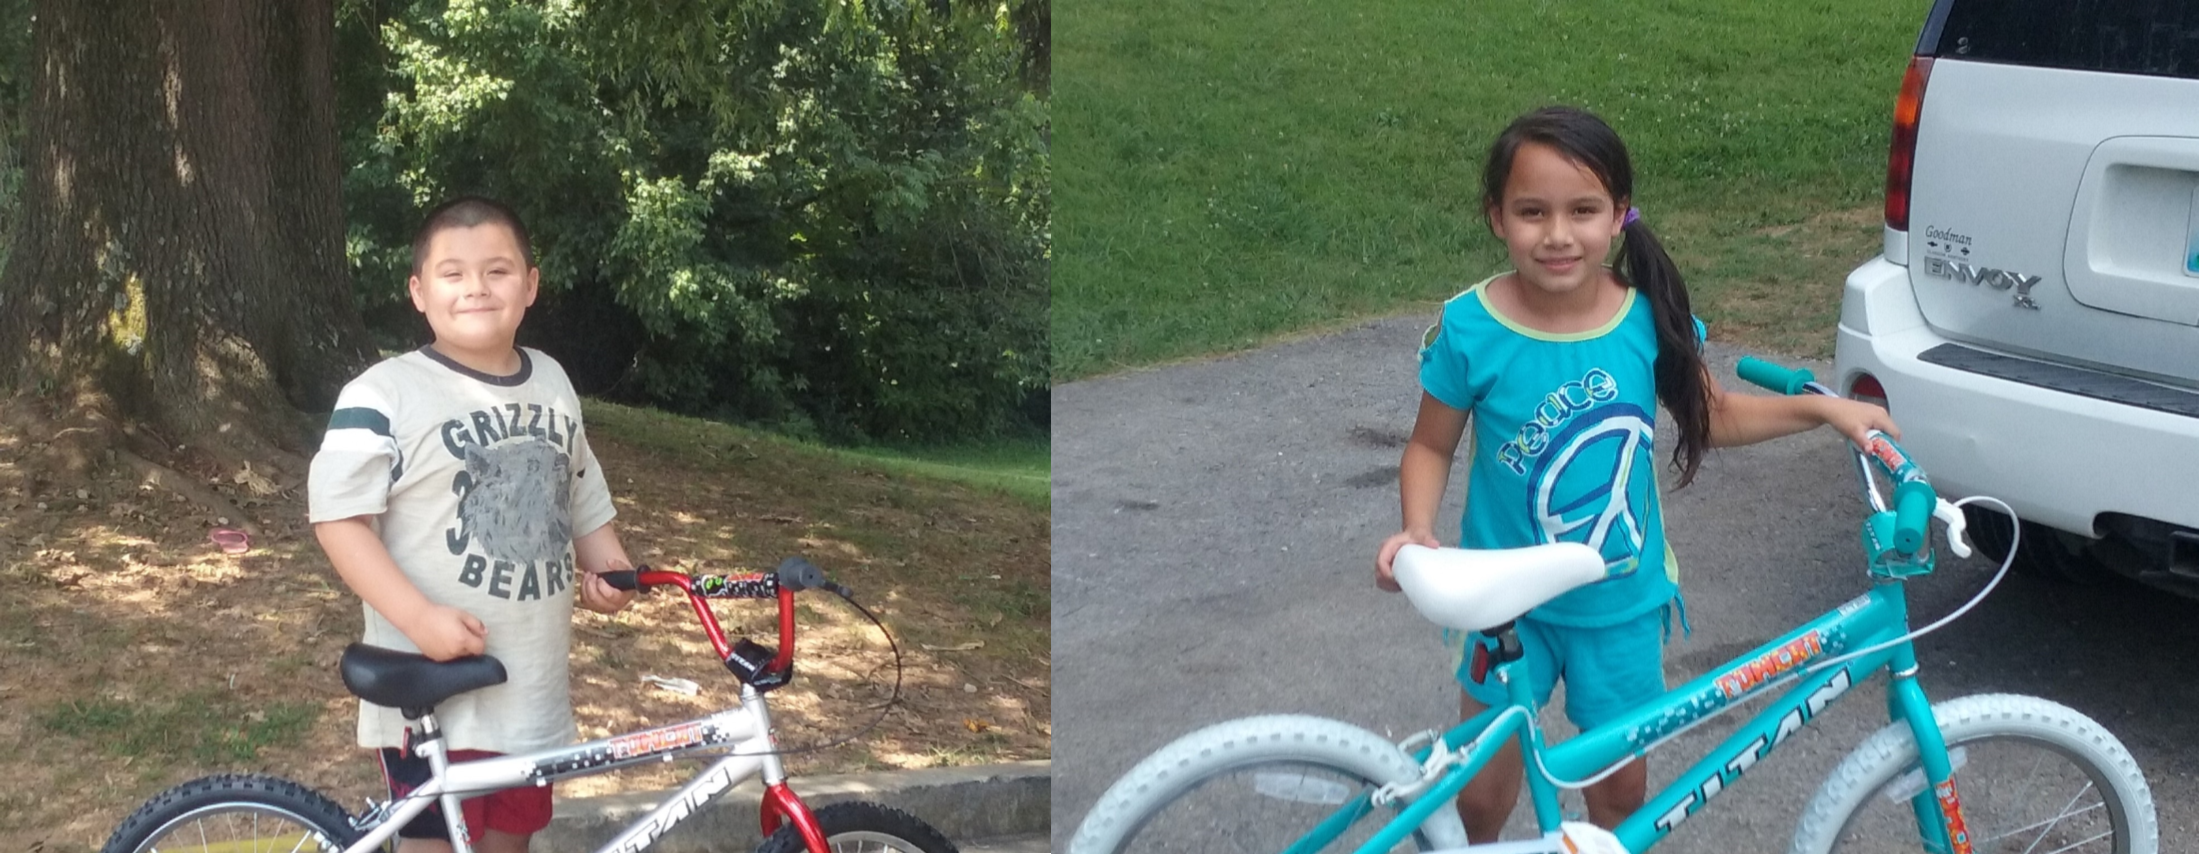 Bryson Frazho and Shaila Pascual were the lucky winners of bicycles given away at the end of the Clinton County Food Service Summer Feeding Program.